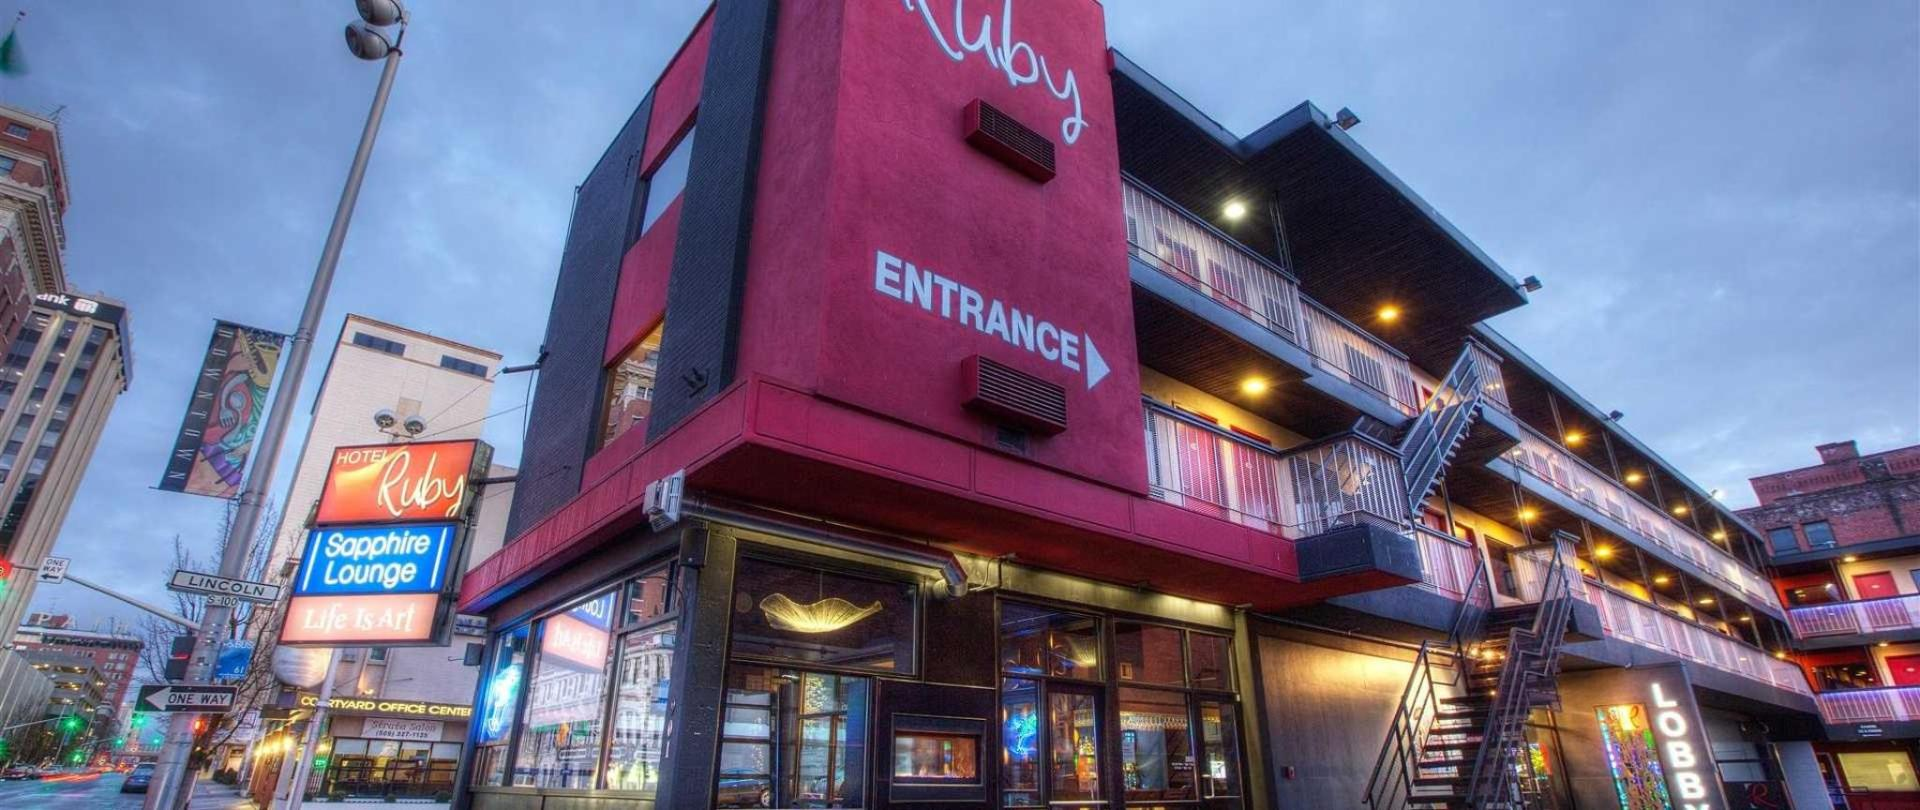 Hotel Ruby Downtown Arts Boutique Spokane United States Of America